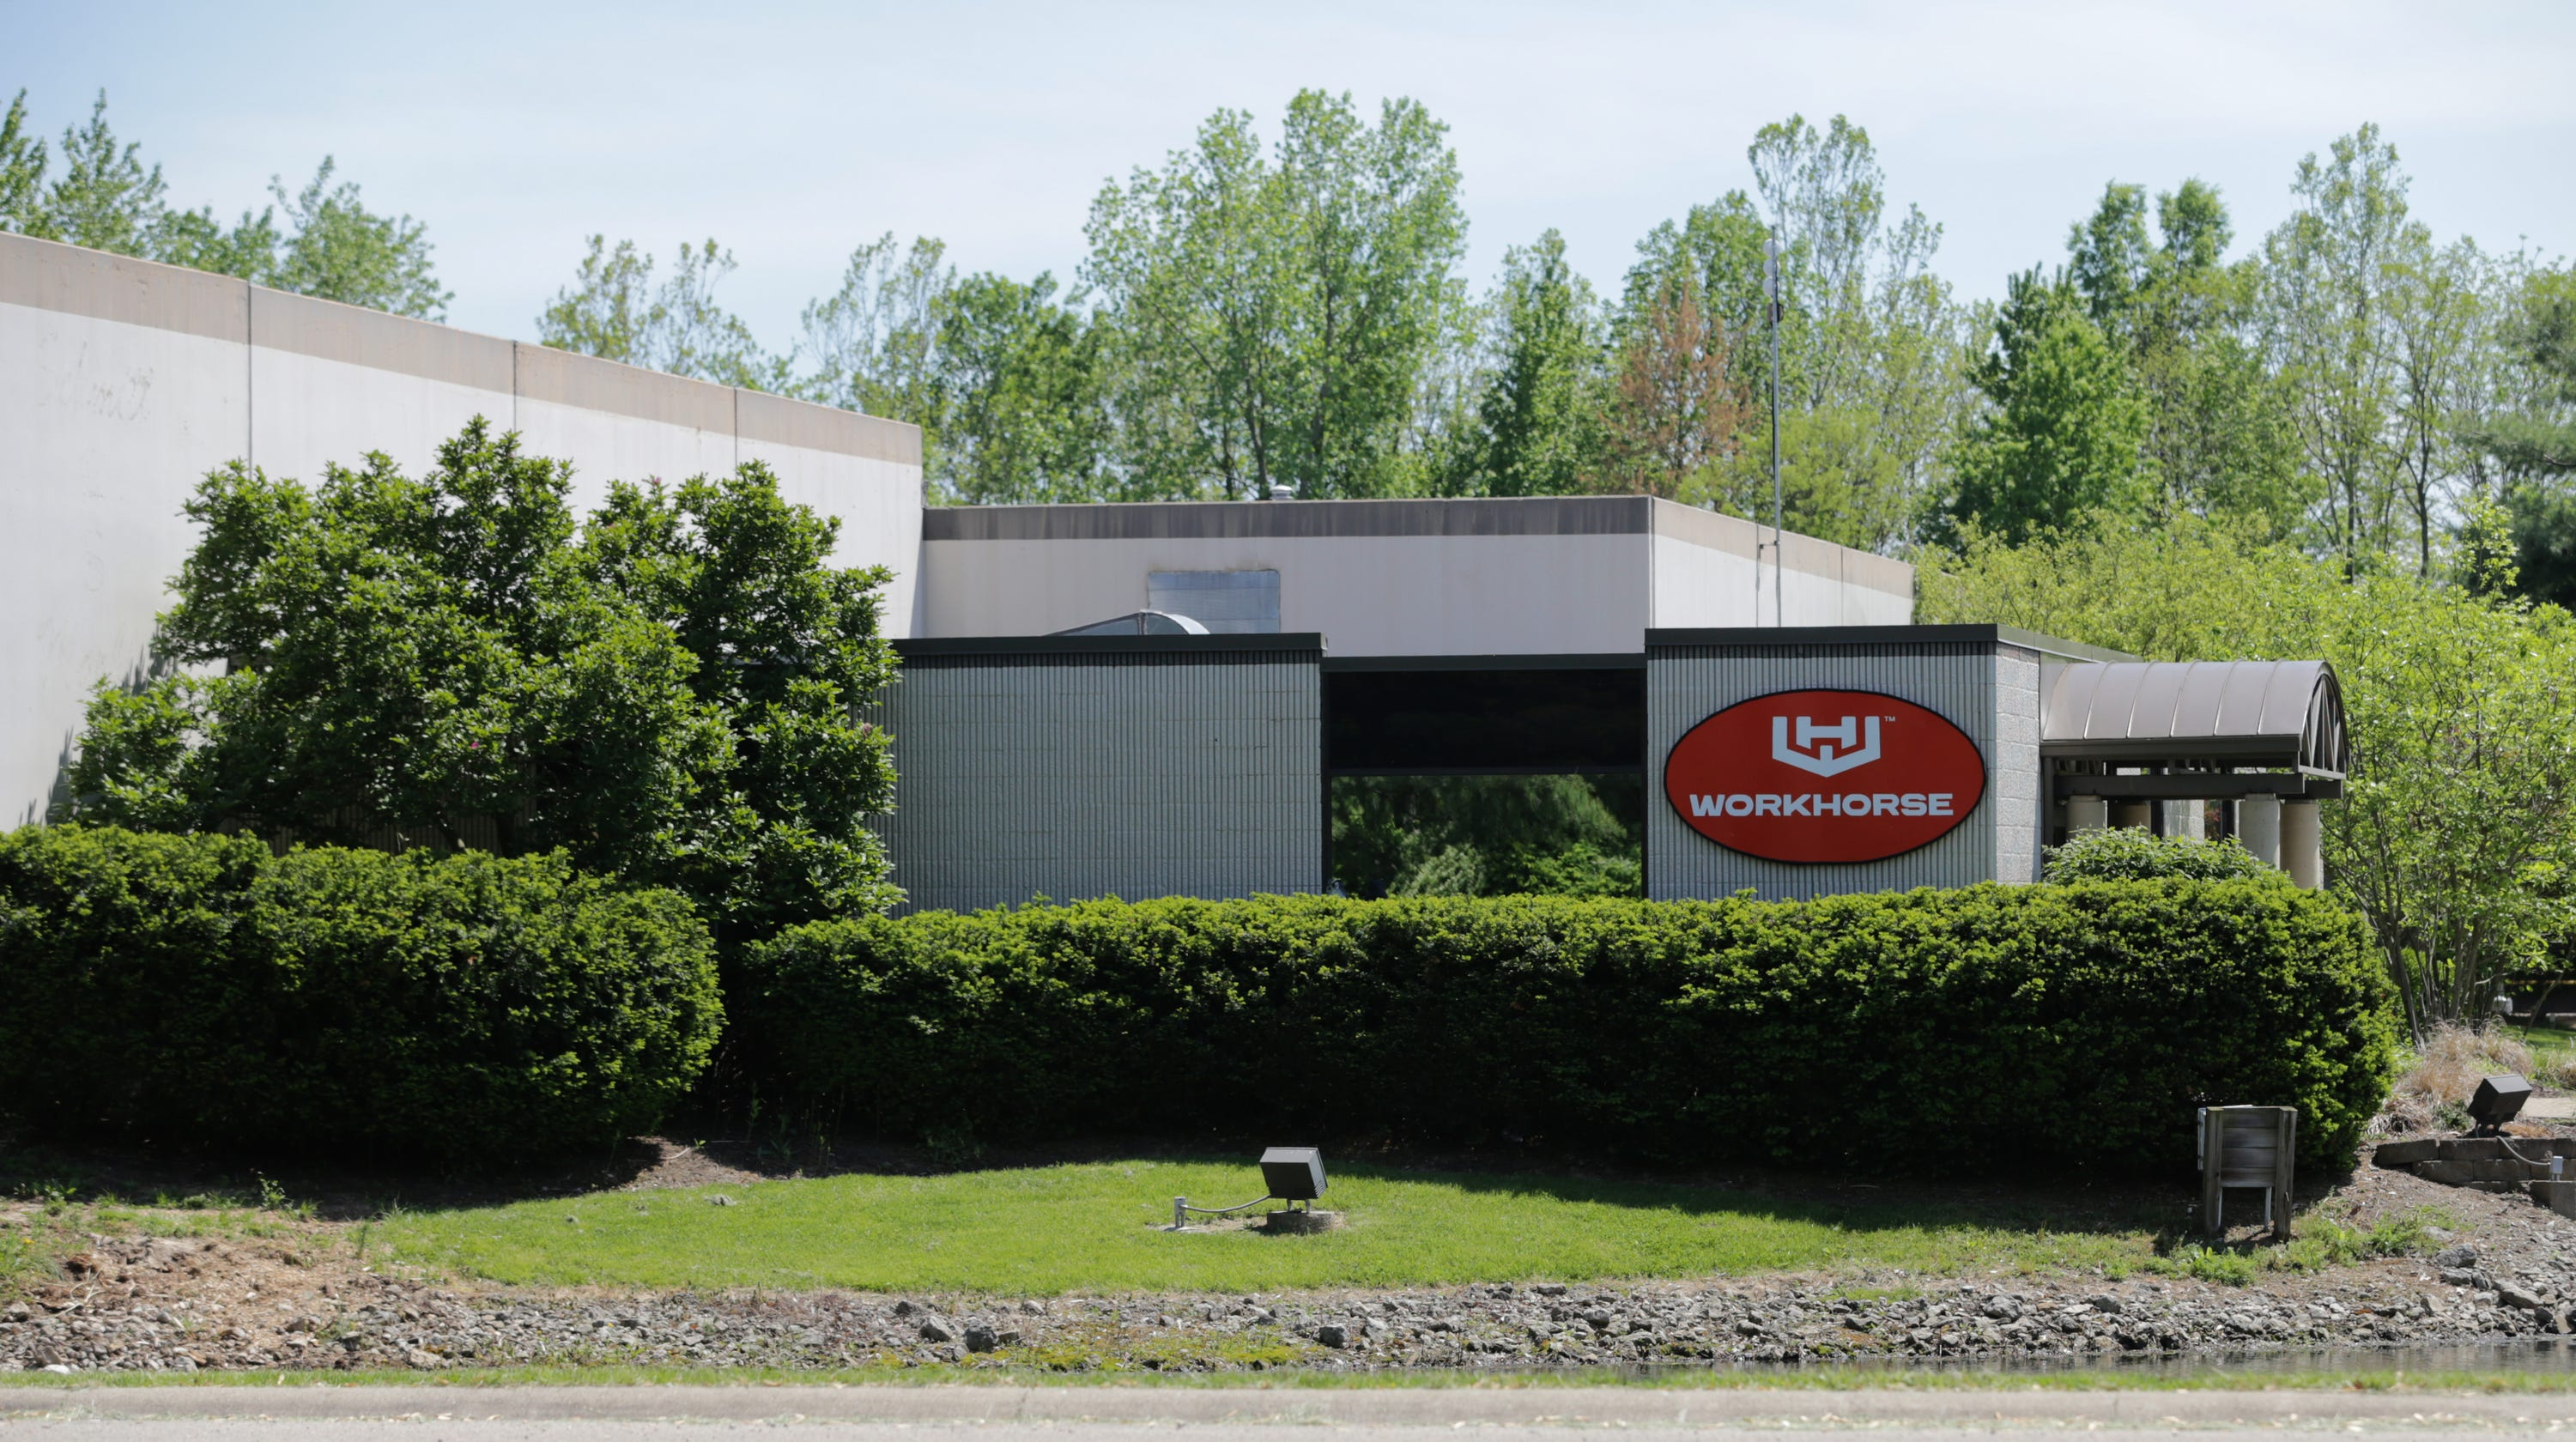 Lordstown GM plant: Can Workforce really buy it